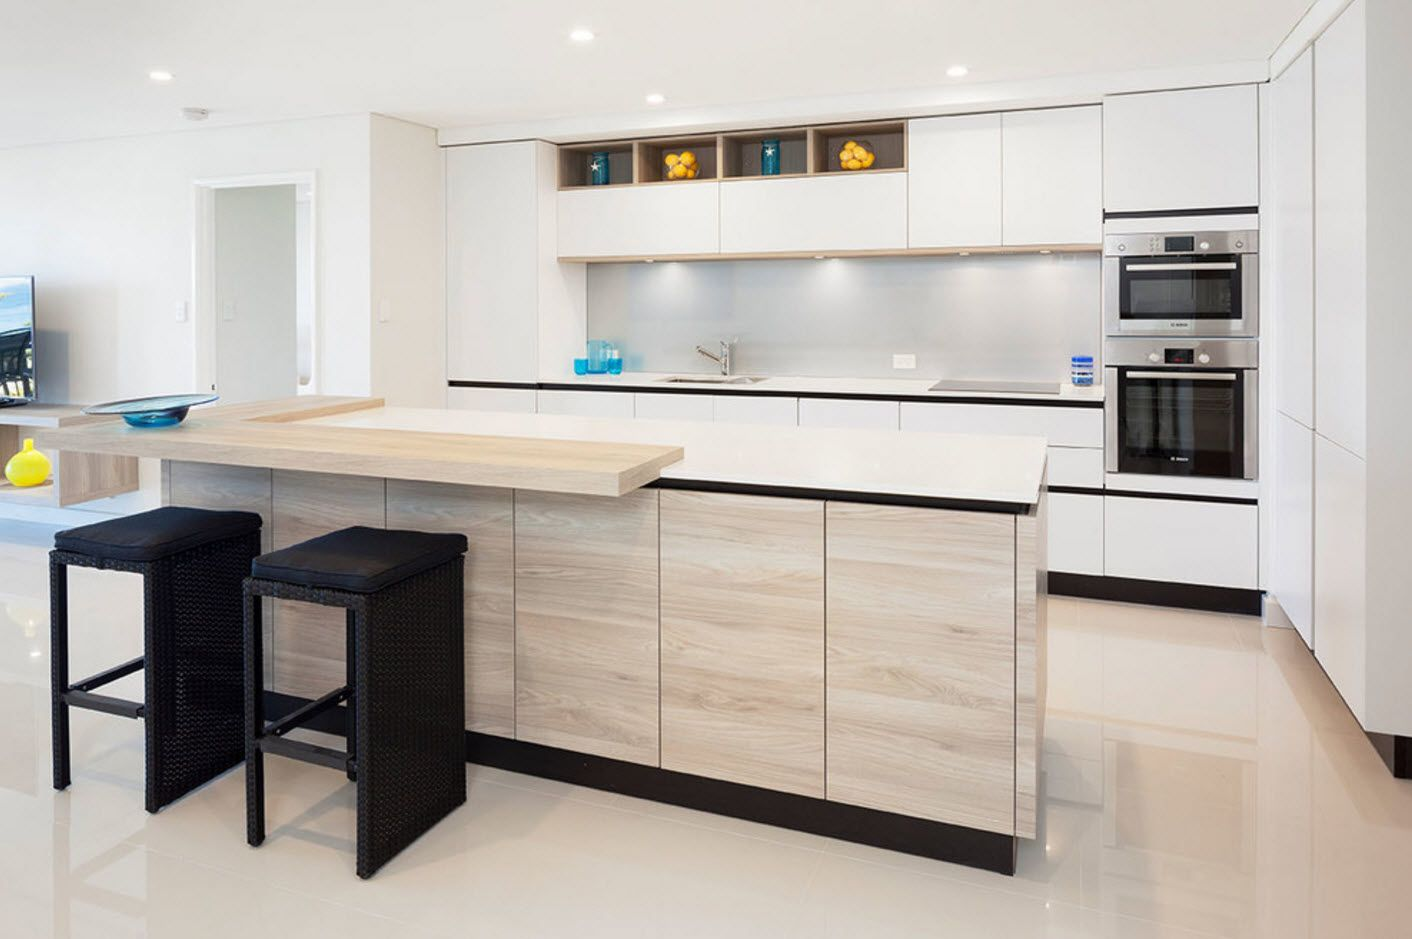 40 Square Feet Kitchen Modern Design Ideas & Layout Types. White hi-tech styled space with an island